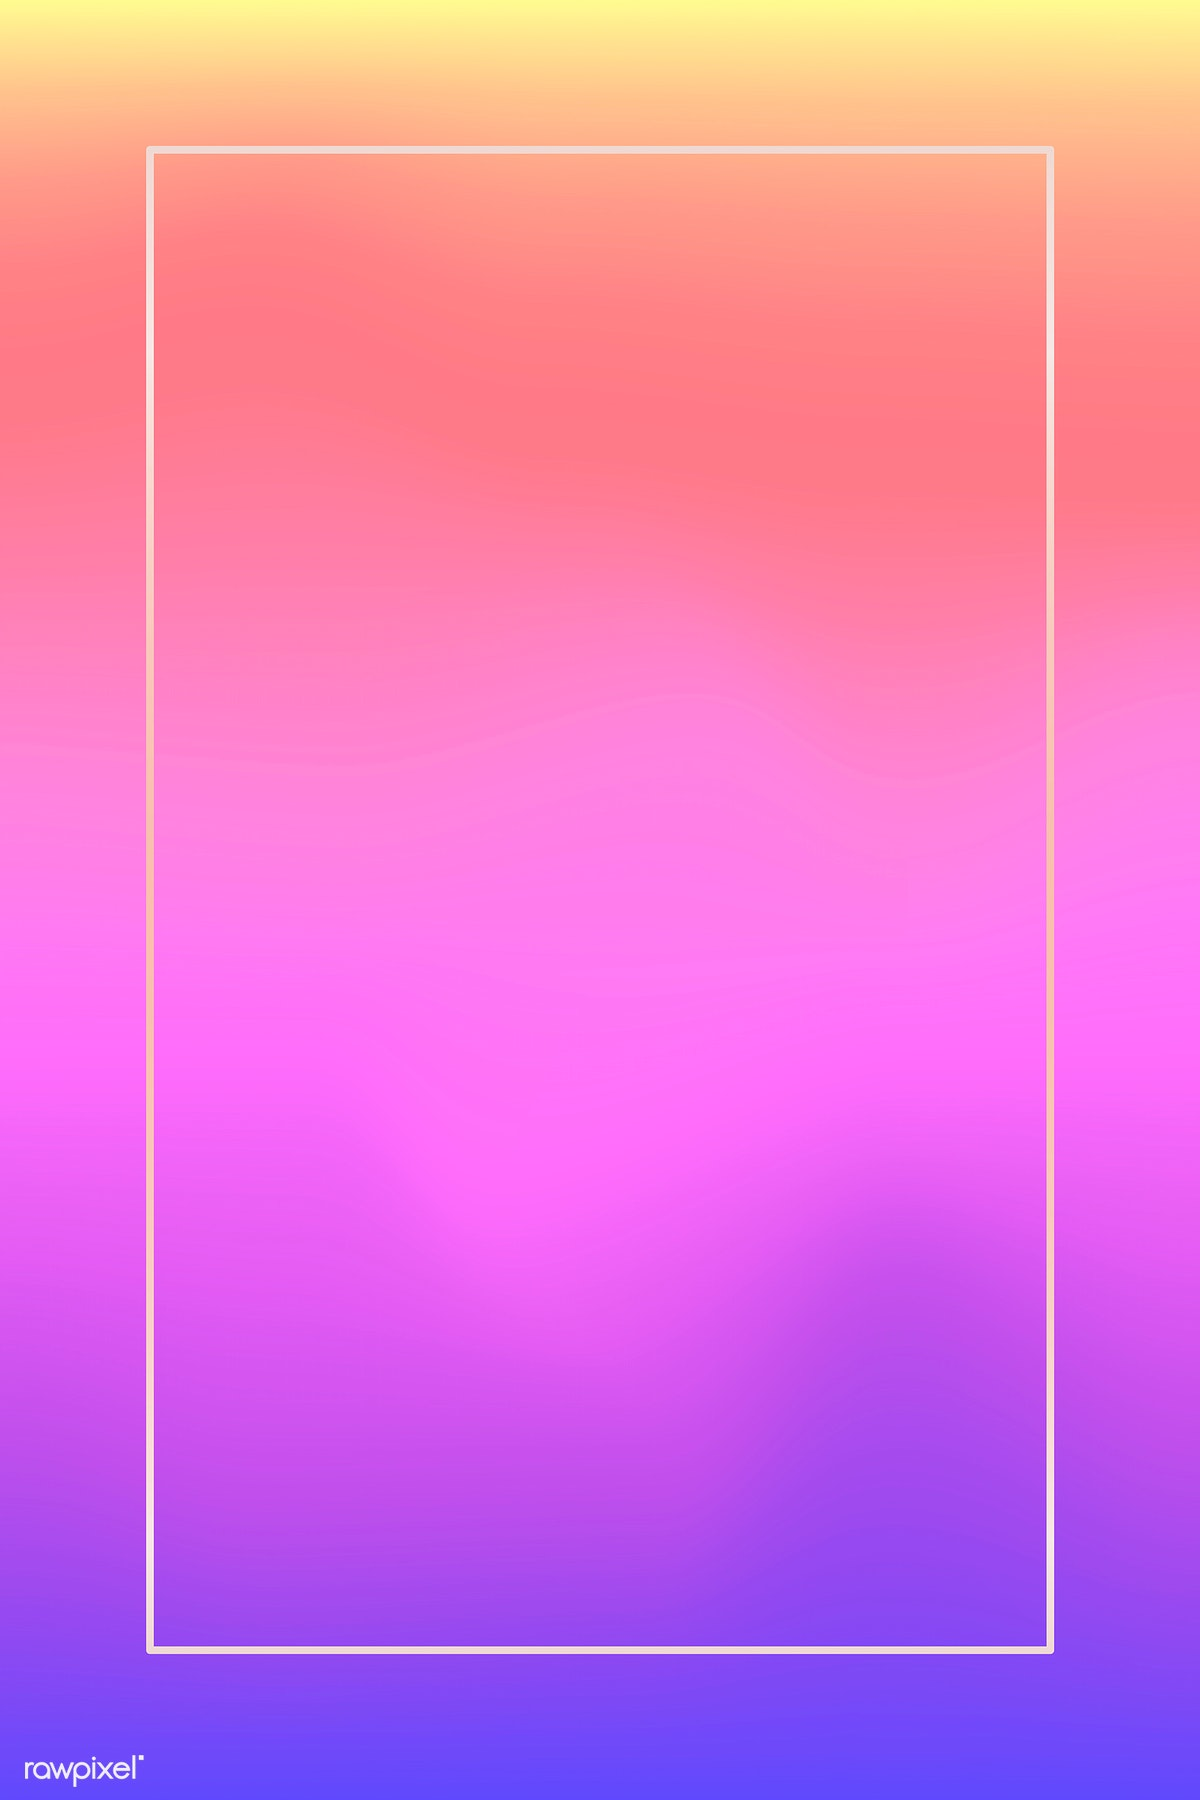 Download premium image of white frame on holographic pattern background